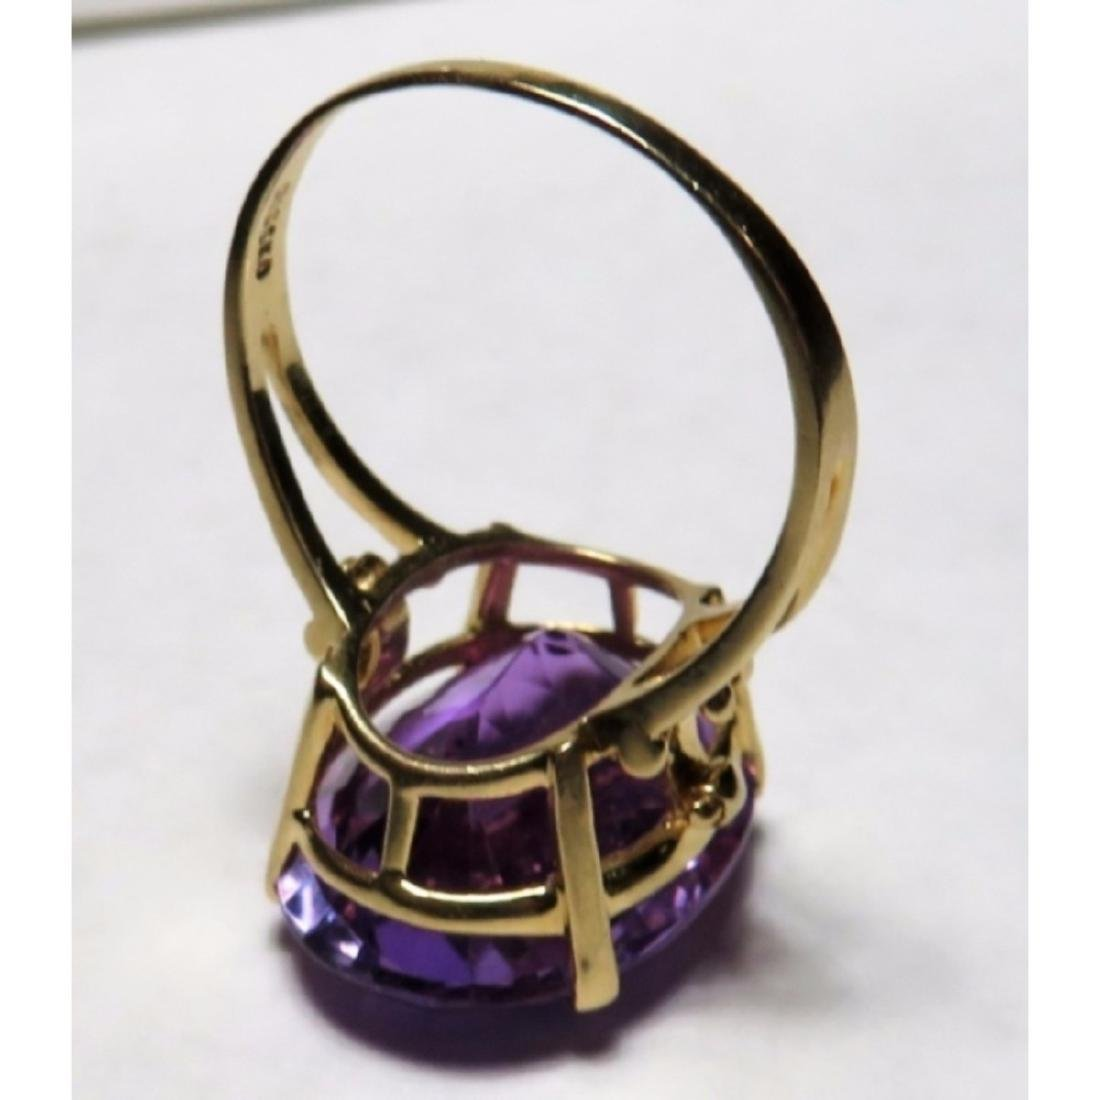 Extra Fine 17 ct. Amethyst  Designer Ring in 14k - 8